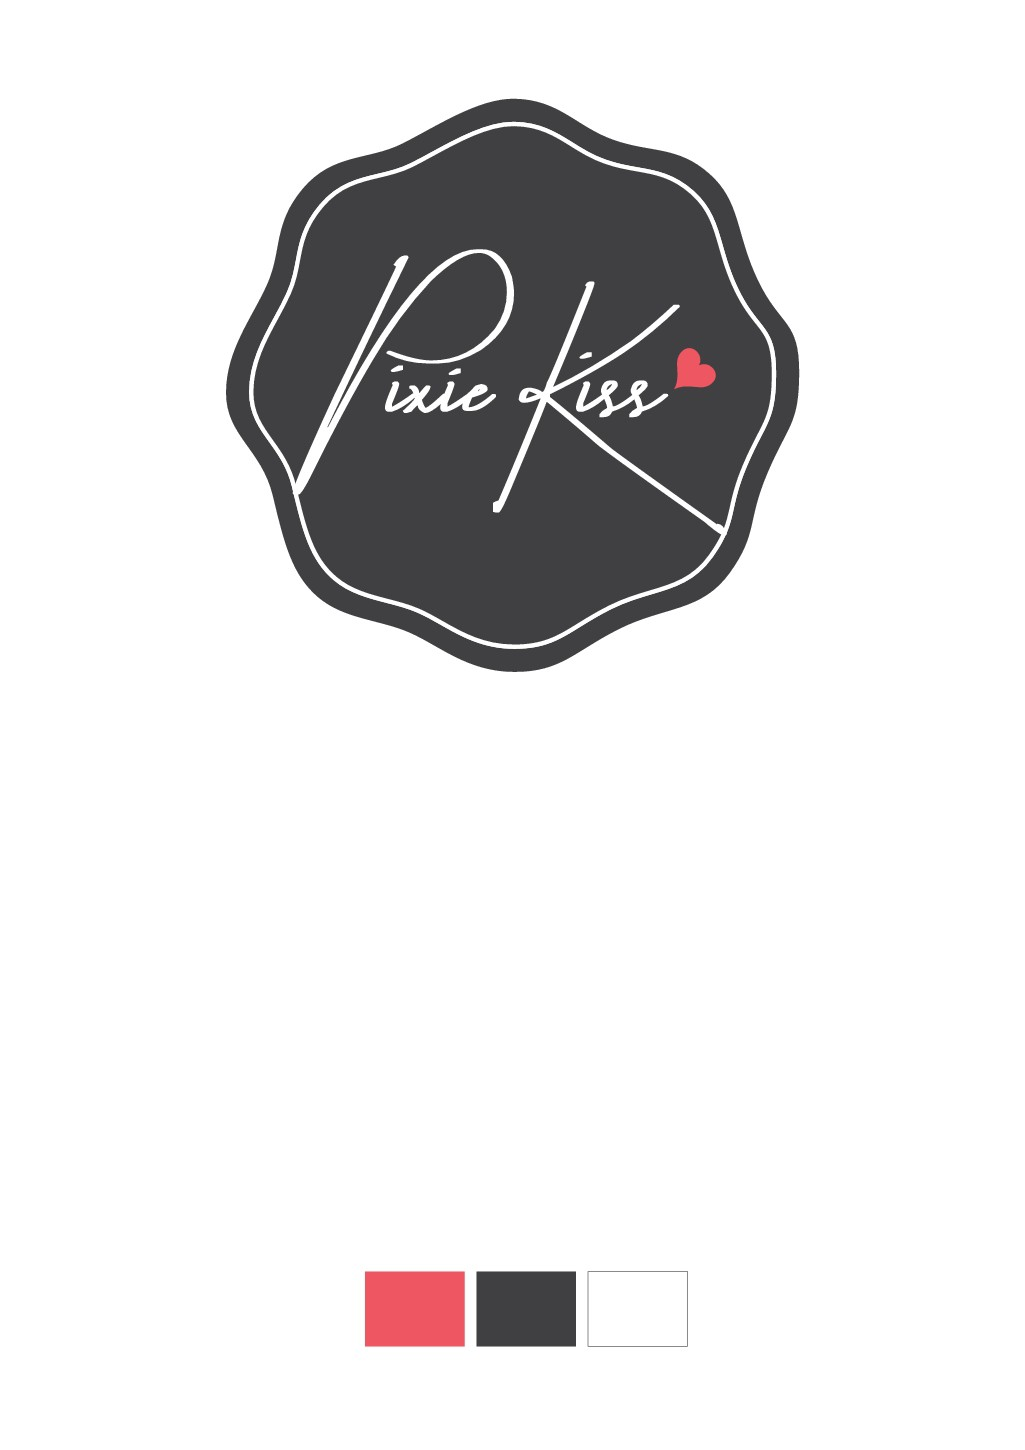 Cute and alluring logo for Pixie Kiss, please!